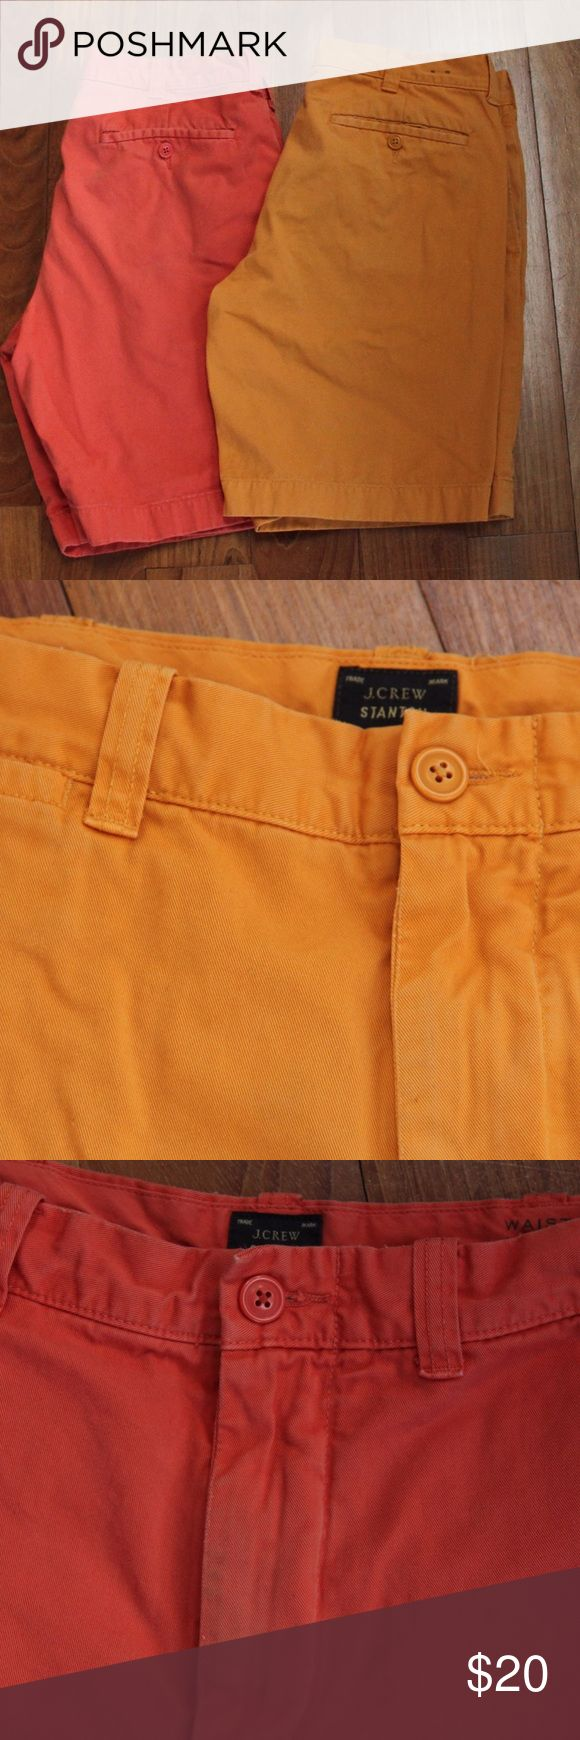 2 Pairs of J Crew Shorts Two pairs of Jcrew Men's shorts! Cotton Twill. Both a little faded, but still awesome finds! Coral pair has some wear in the front- see photo. No stains or tears. Hipster Perfect! J. Crew Shorts